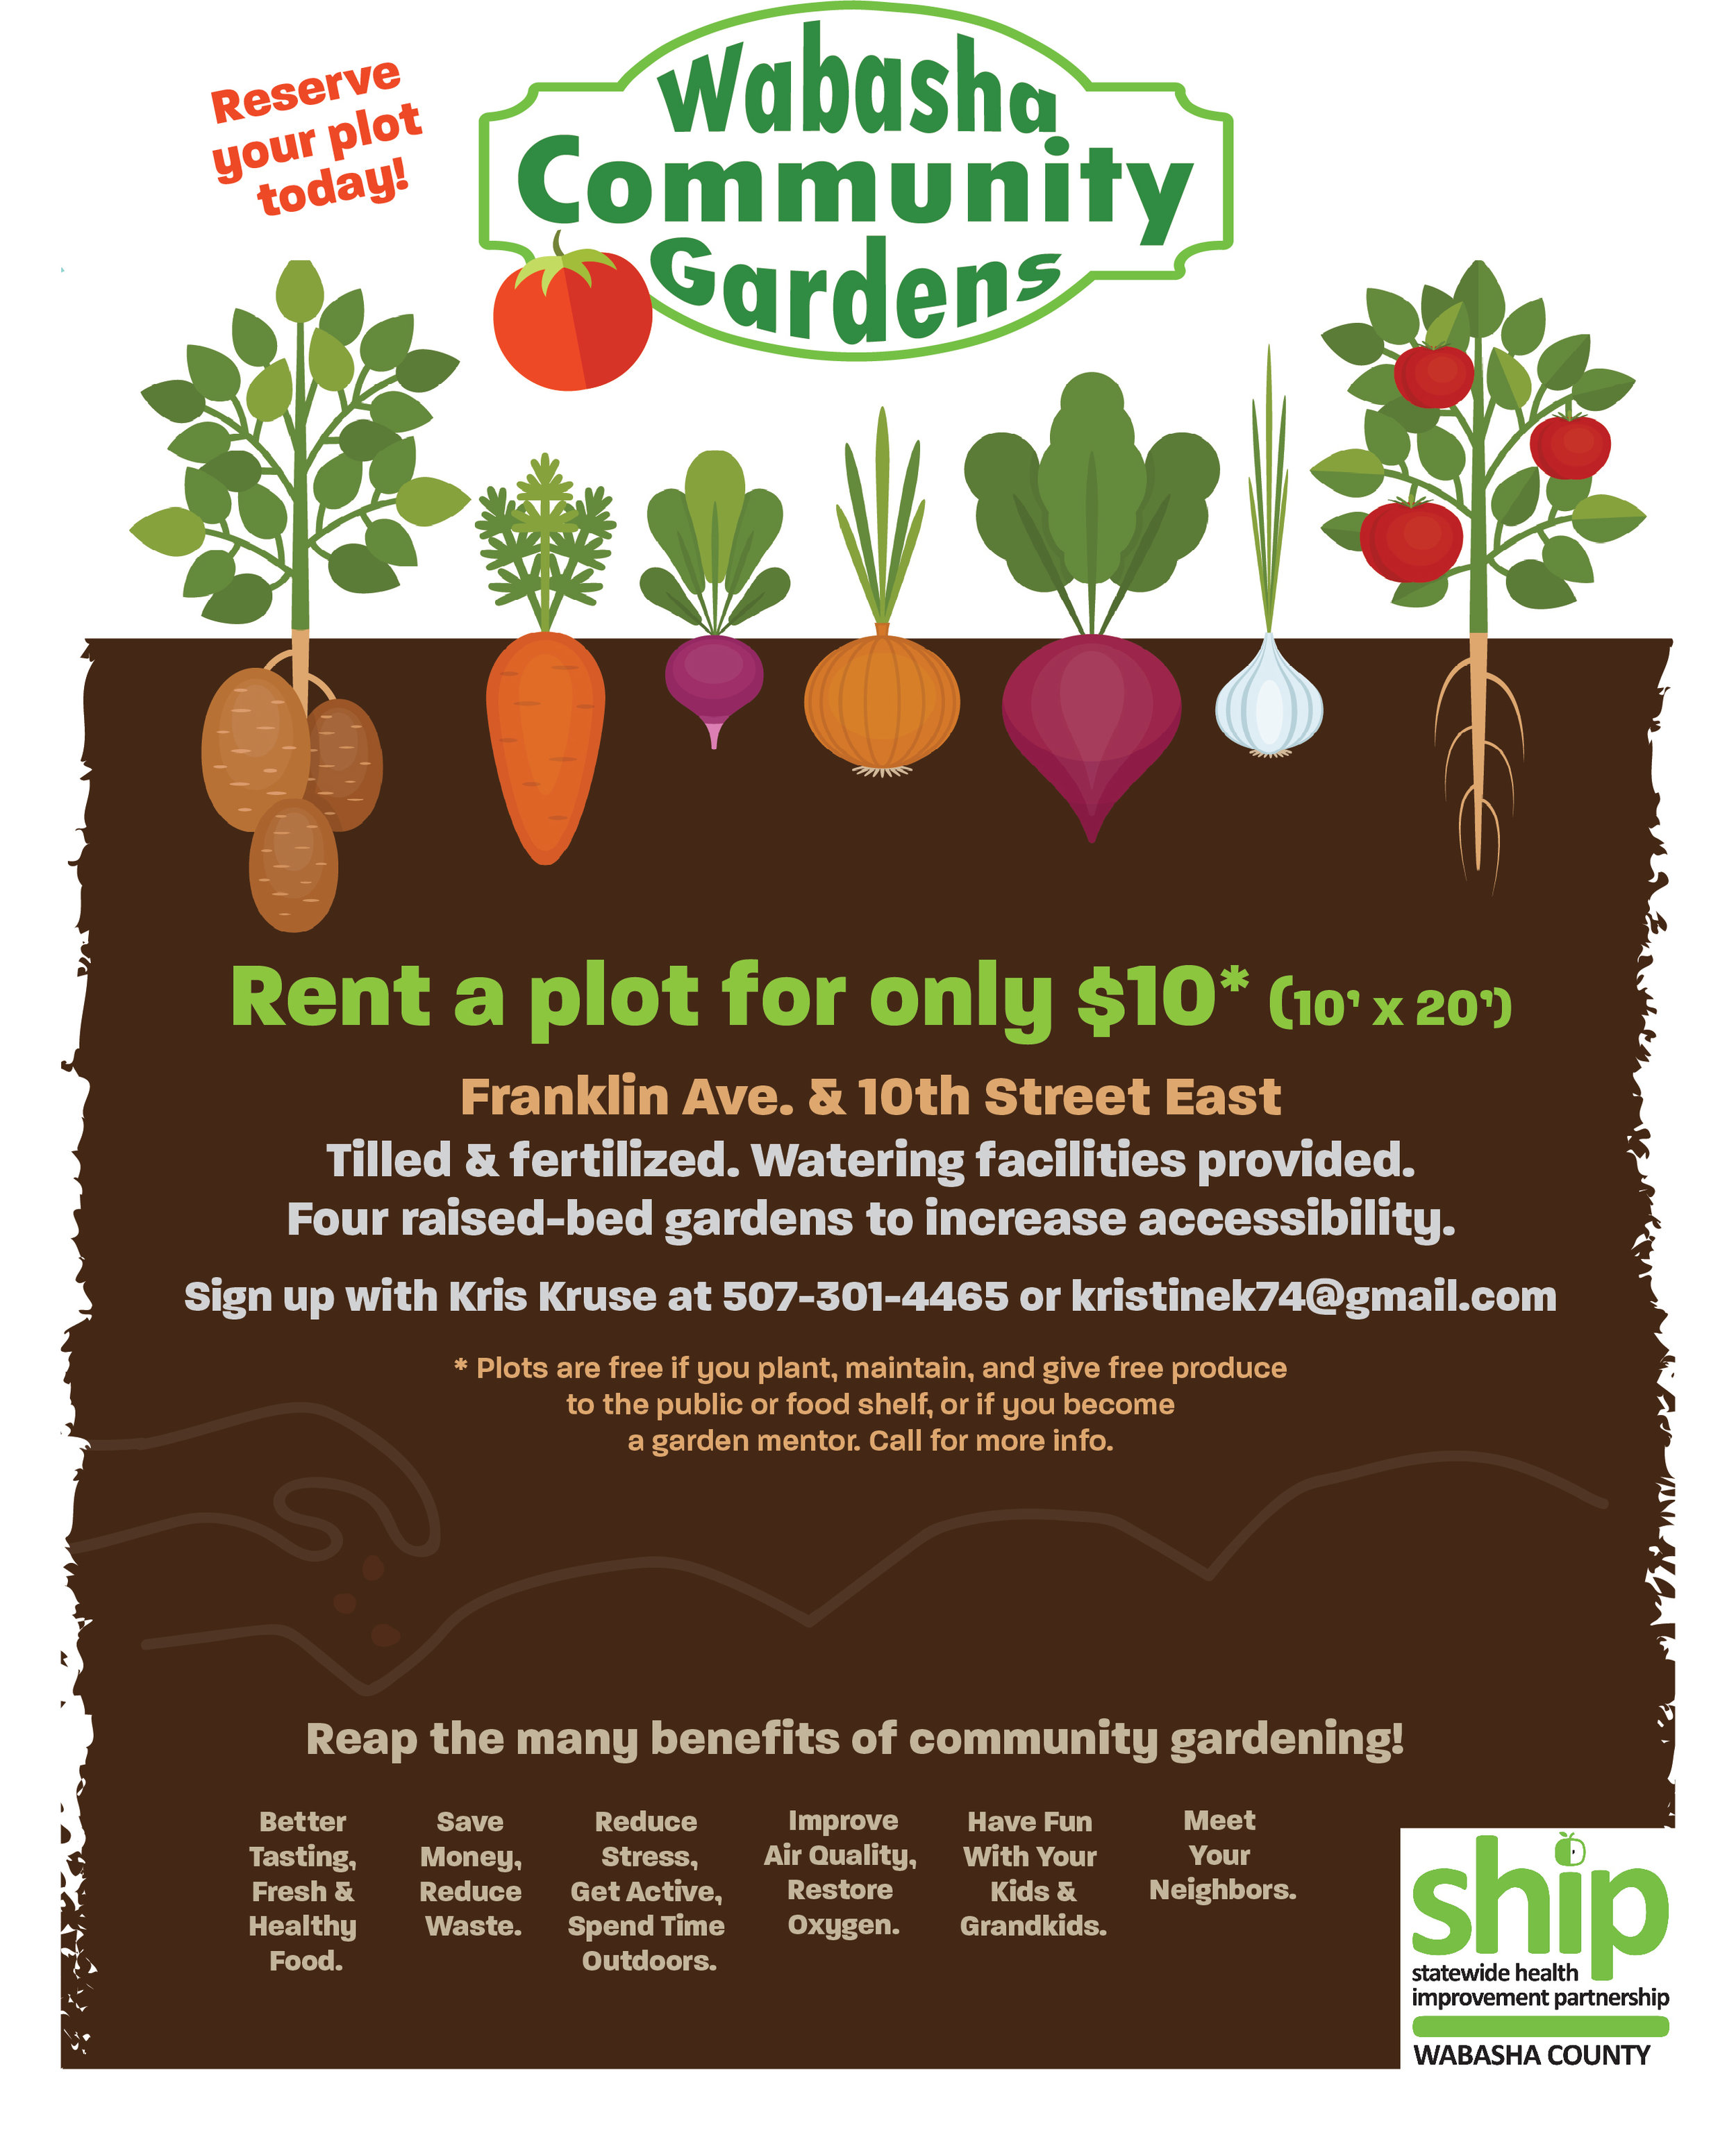 Wabasha community garden flyer-revised.jpg